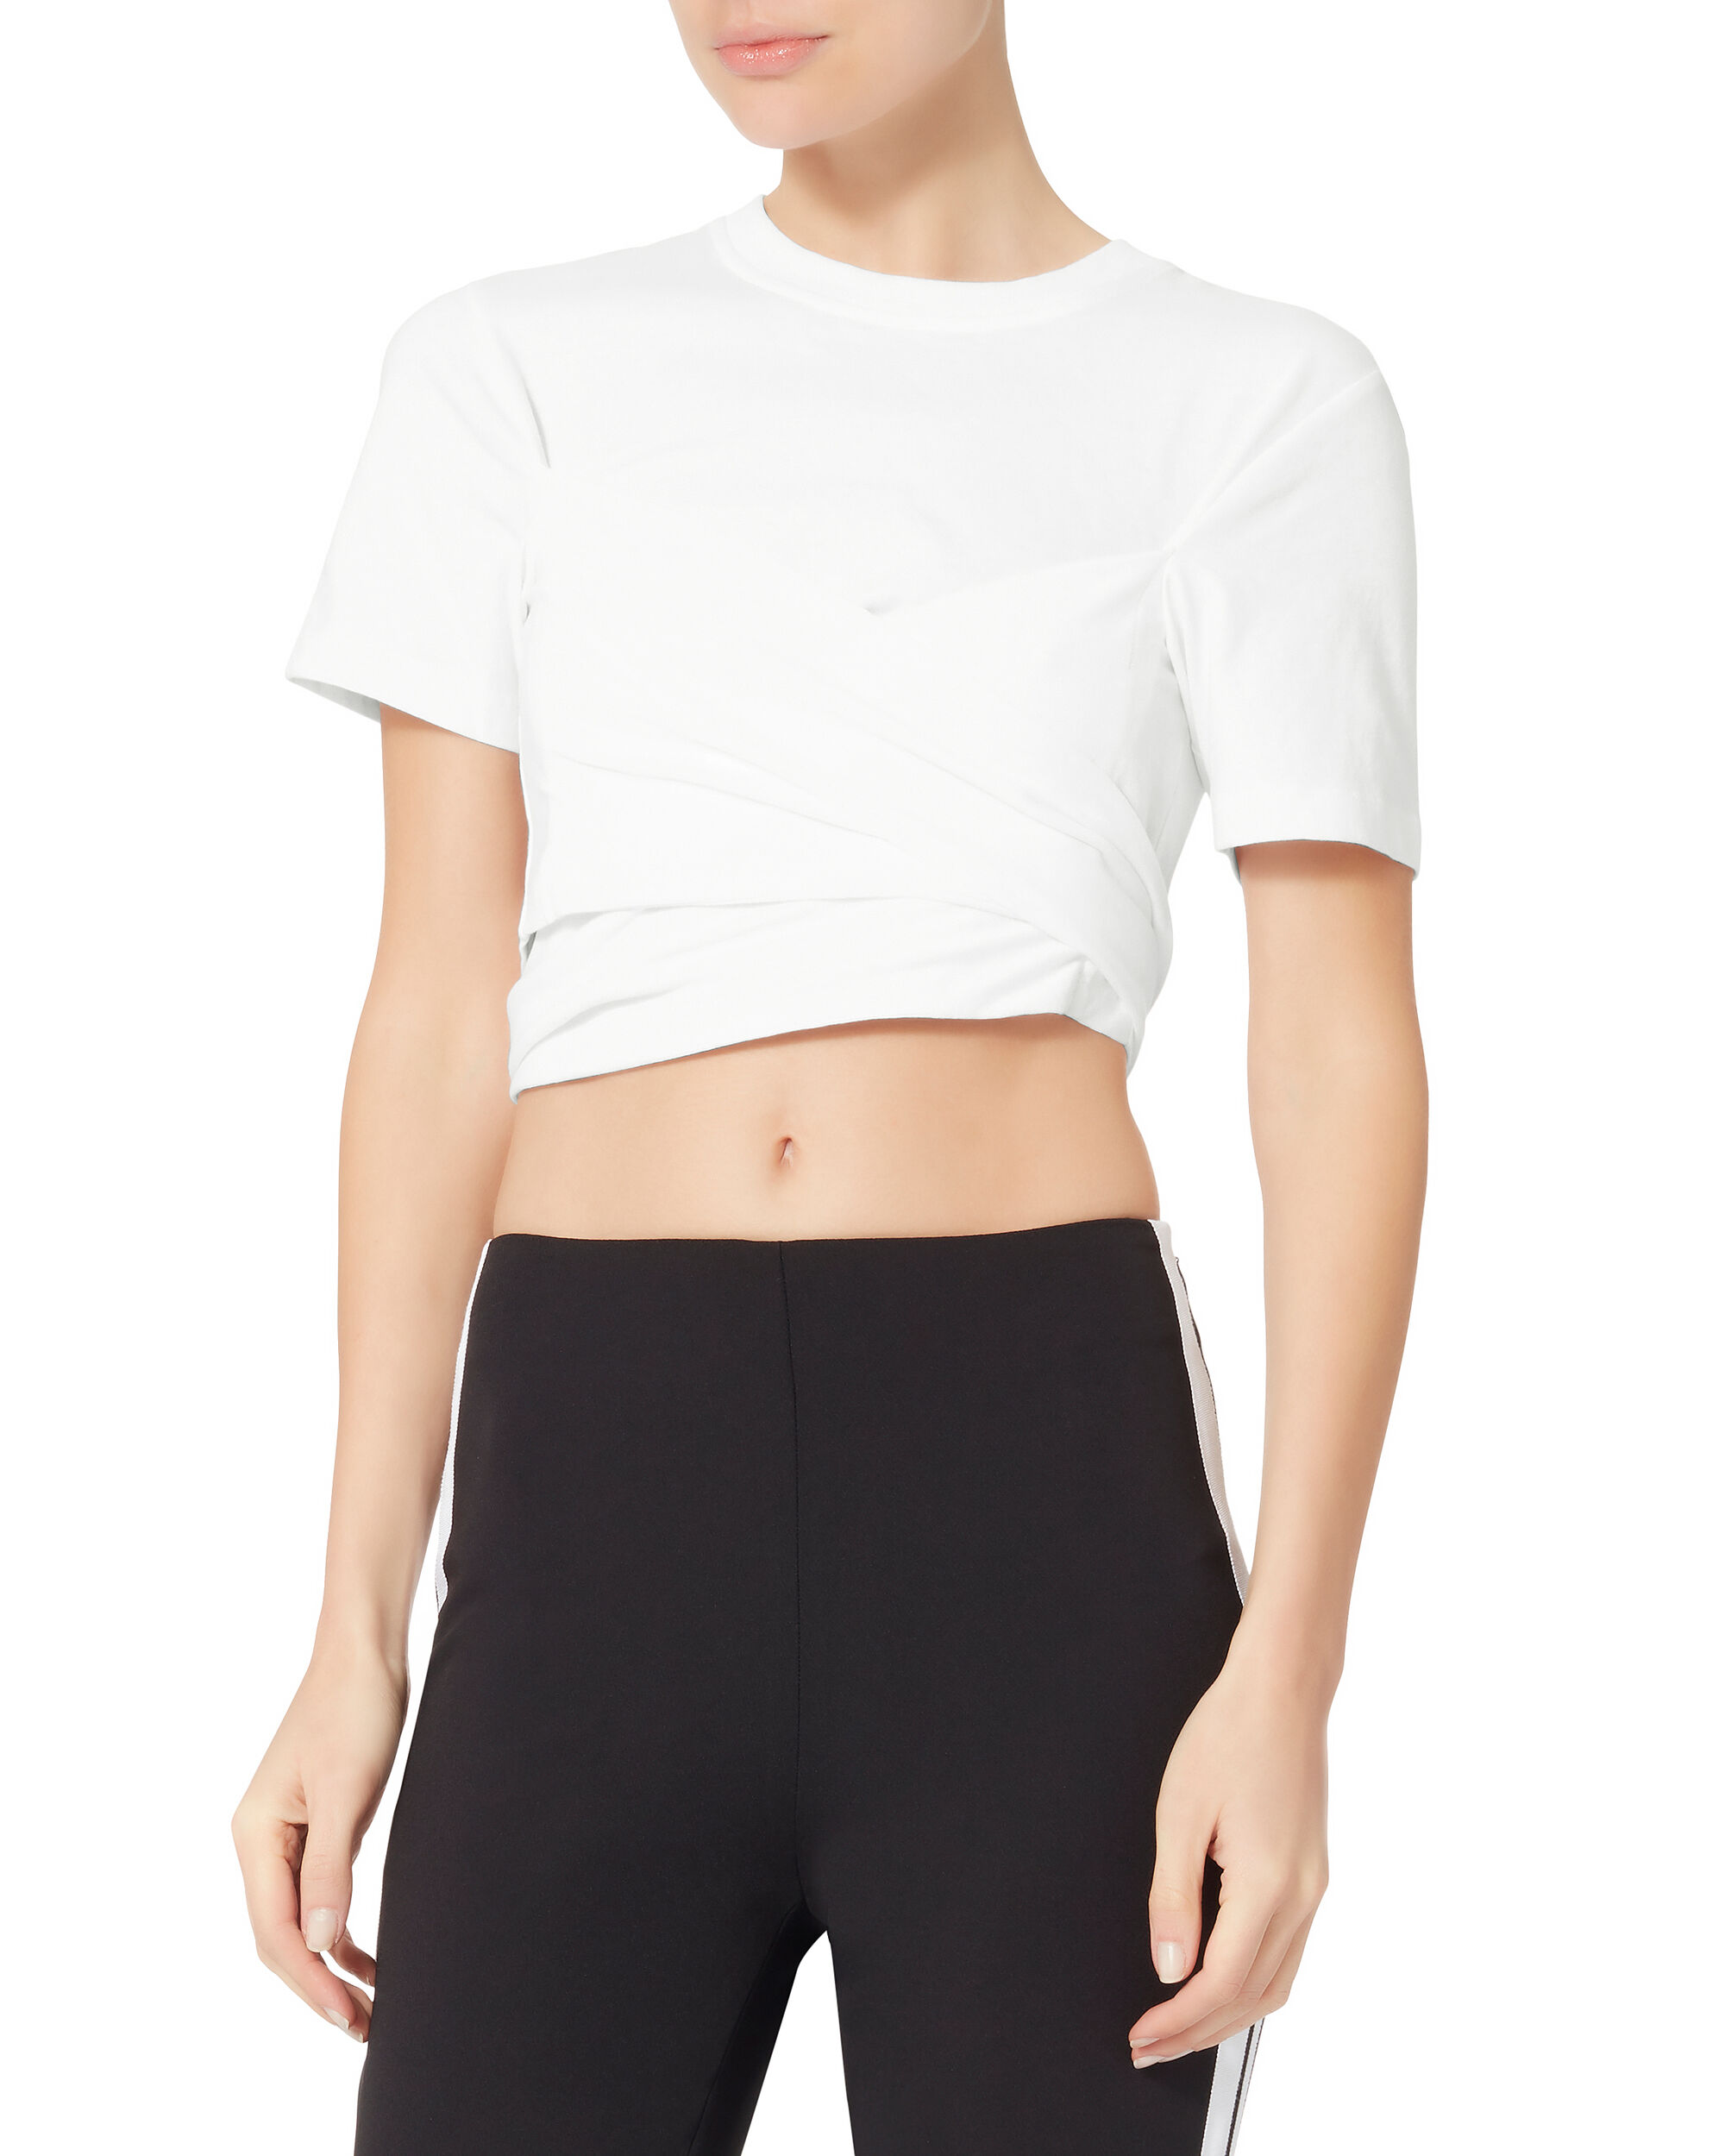 Crossover White Crop Top, WHITE, hi-res